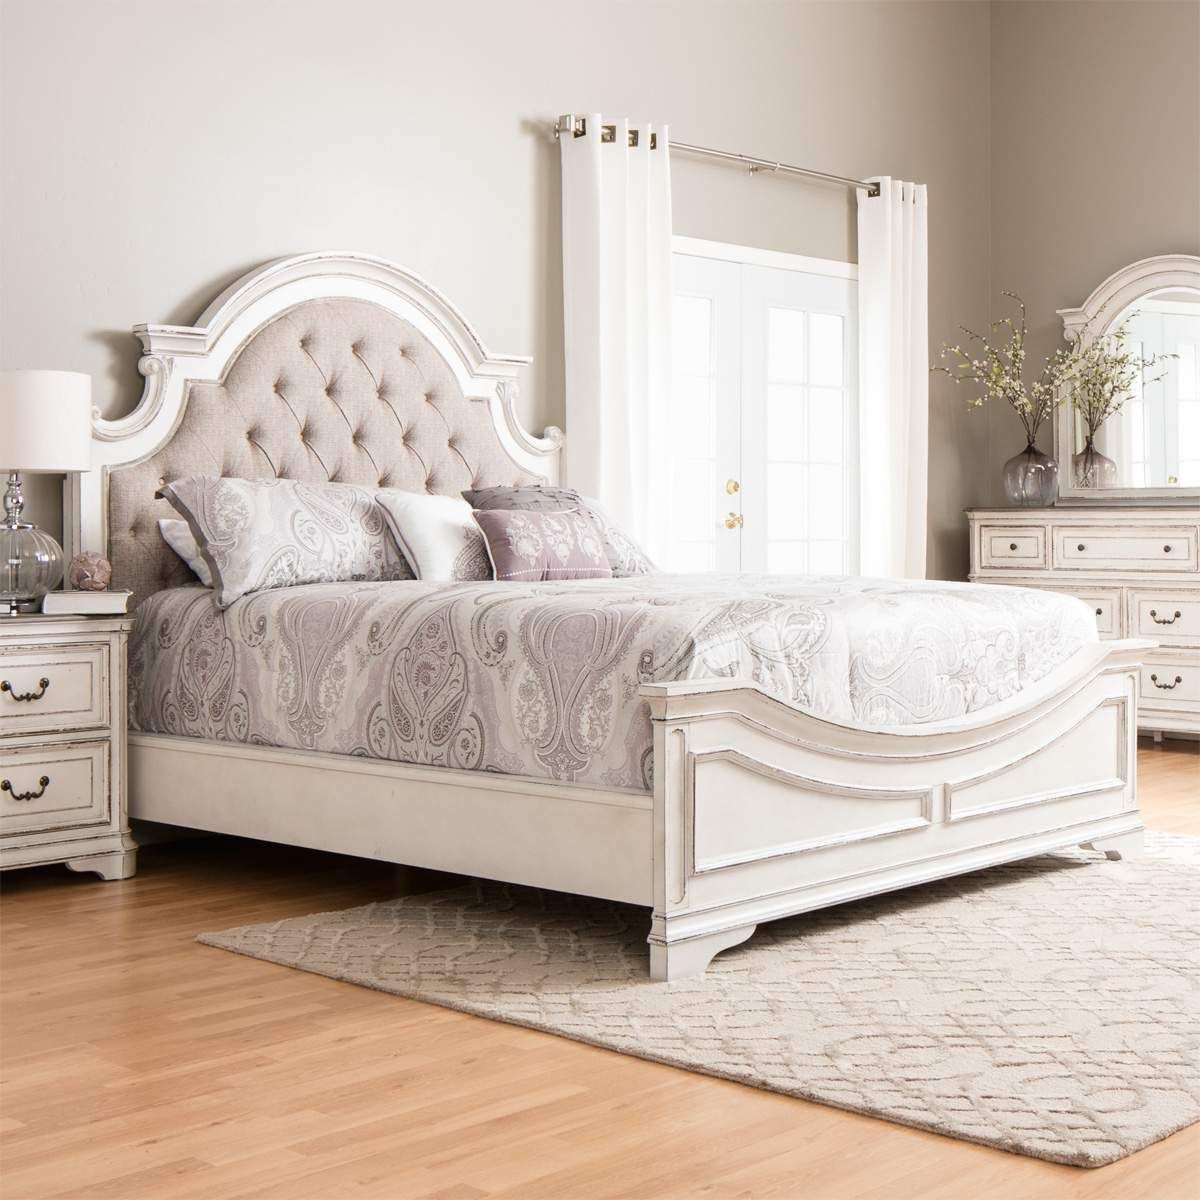 Savannah | Vintage bedroom sets, White bedroom set, Bedroom ...